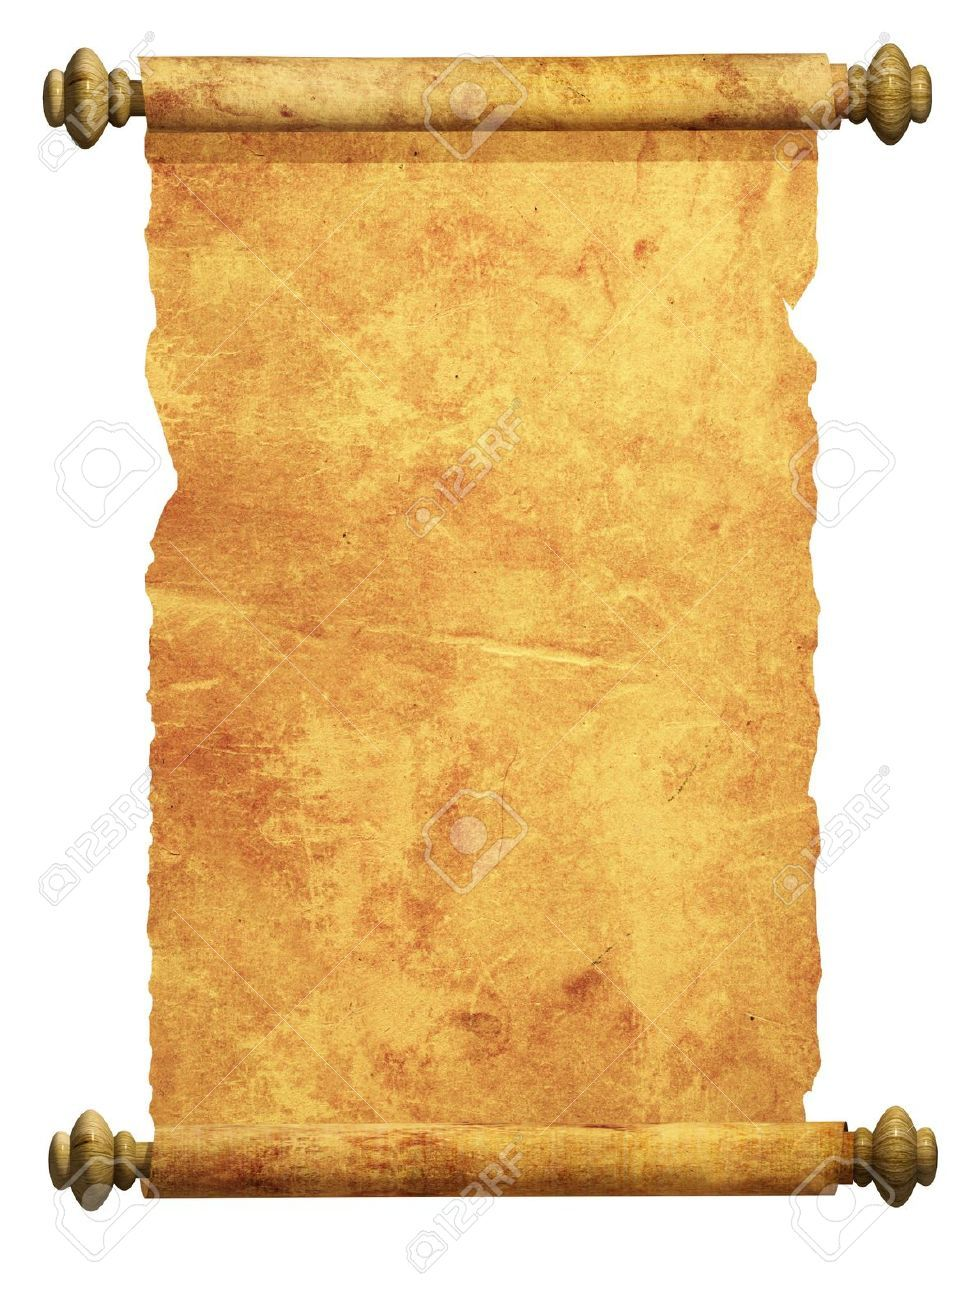 6782038-Scroll-of-old-parchment-Object-over-white-Stock-Photo ...